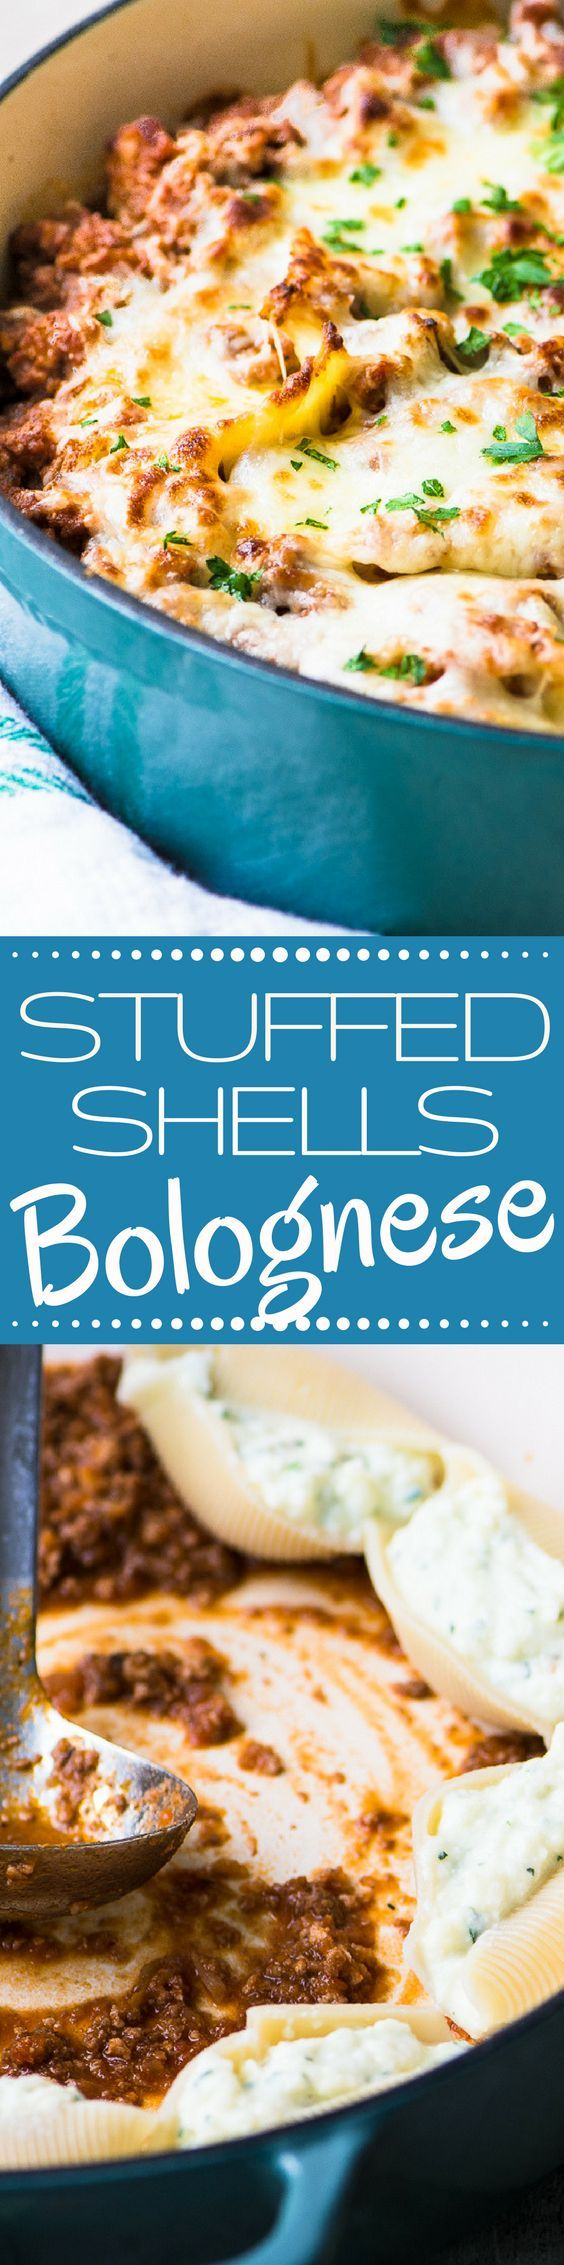 Stuffed Shells Bolognese ~ a rich meaty Bolognese sauce elevates these stuffed shells from a family dinnertime classic to a special occasion centerpiece. | Italian pasta | casserole | meat sauce | entertaining | comfort food | high protein | dinner